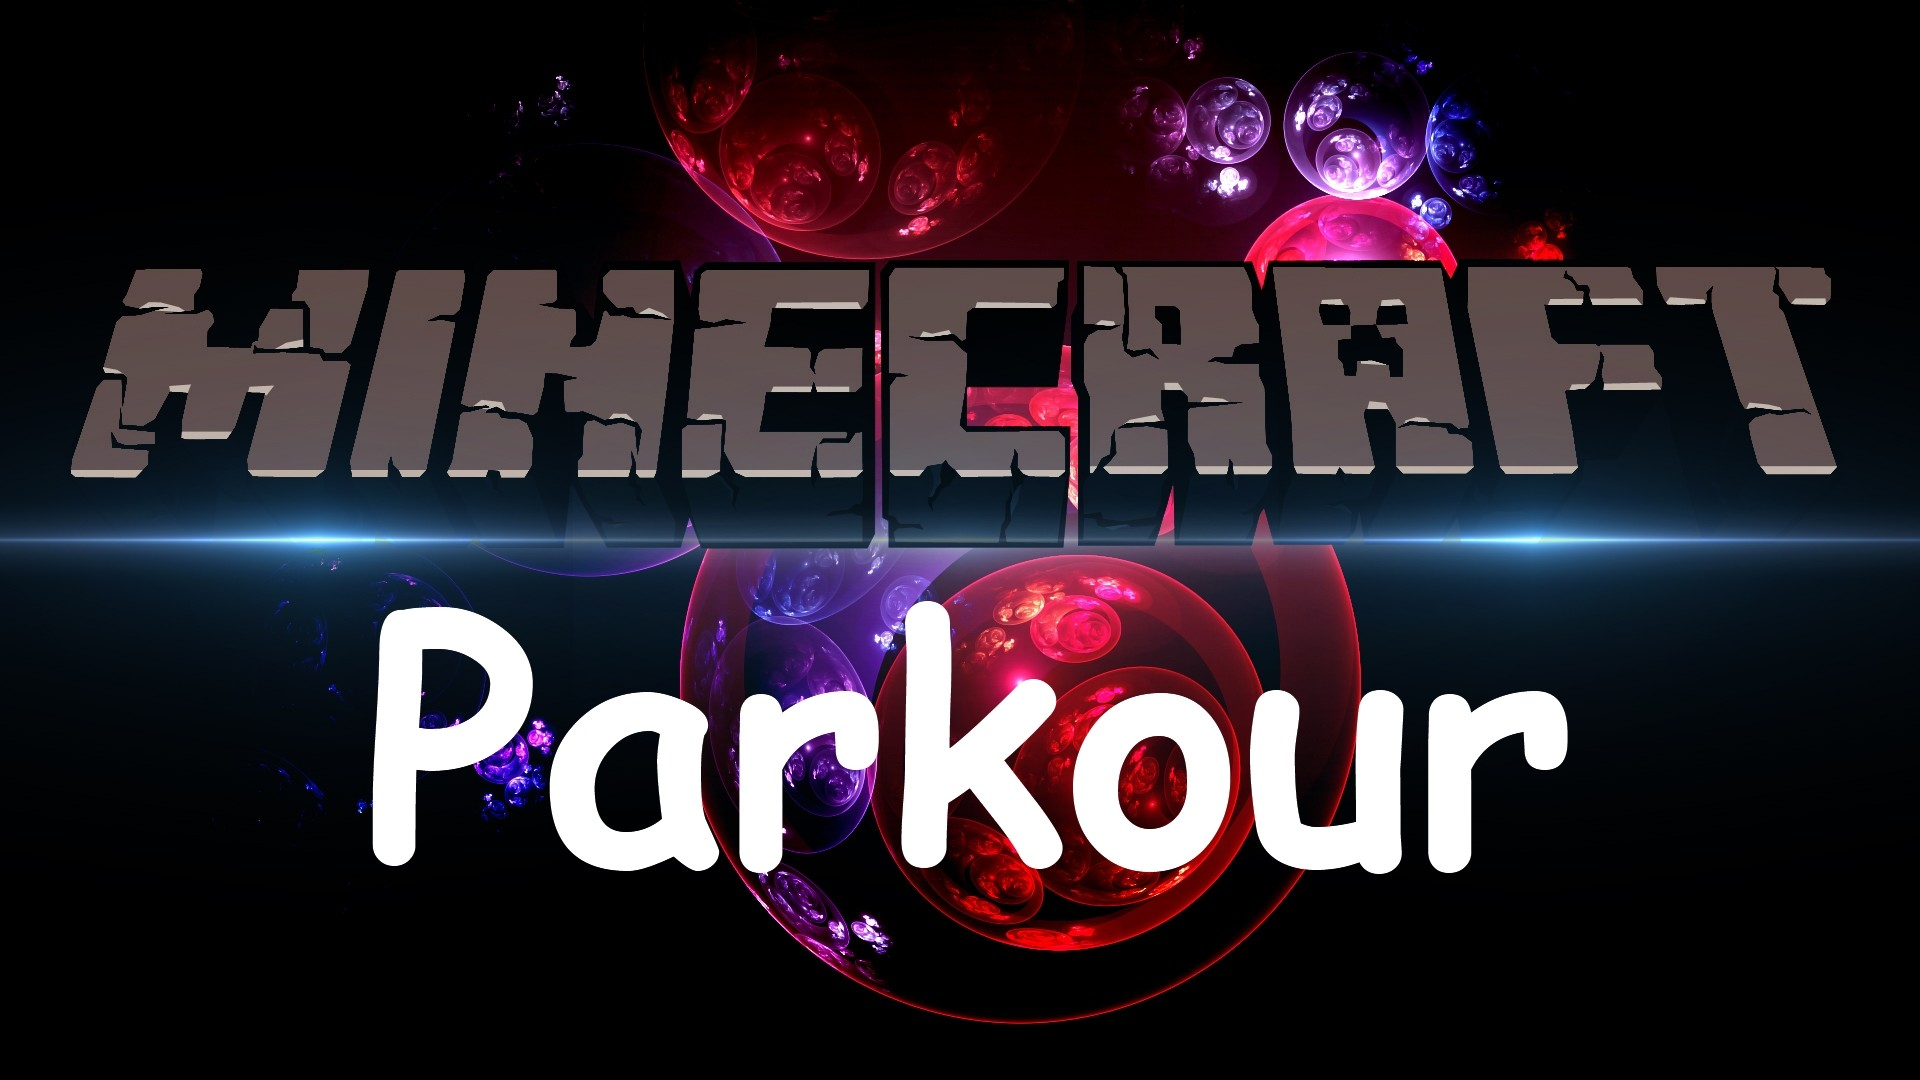 Parkour Free Running Wallpaper posted ...